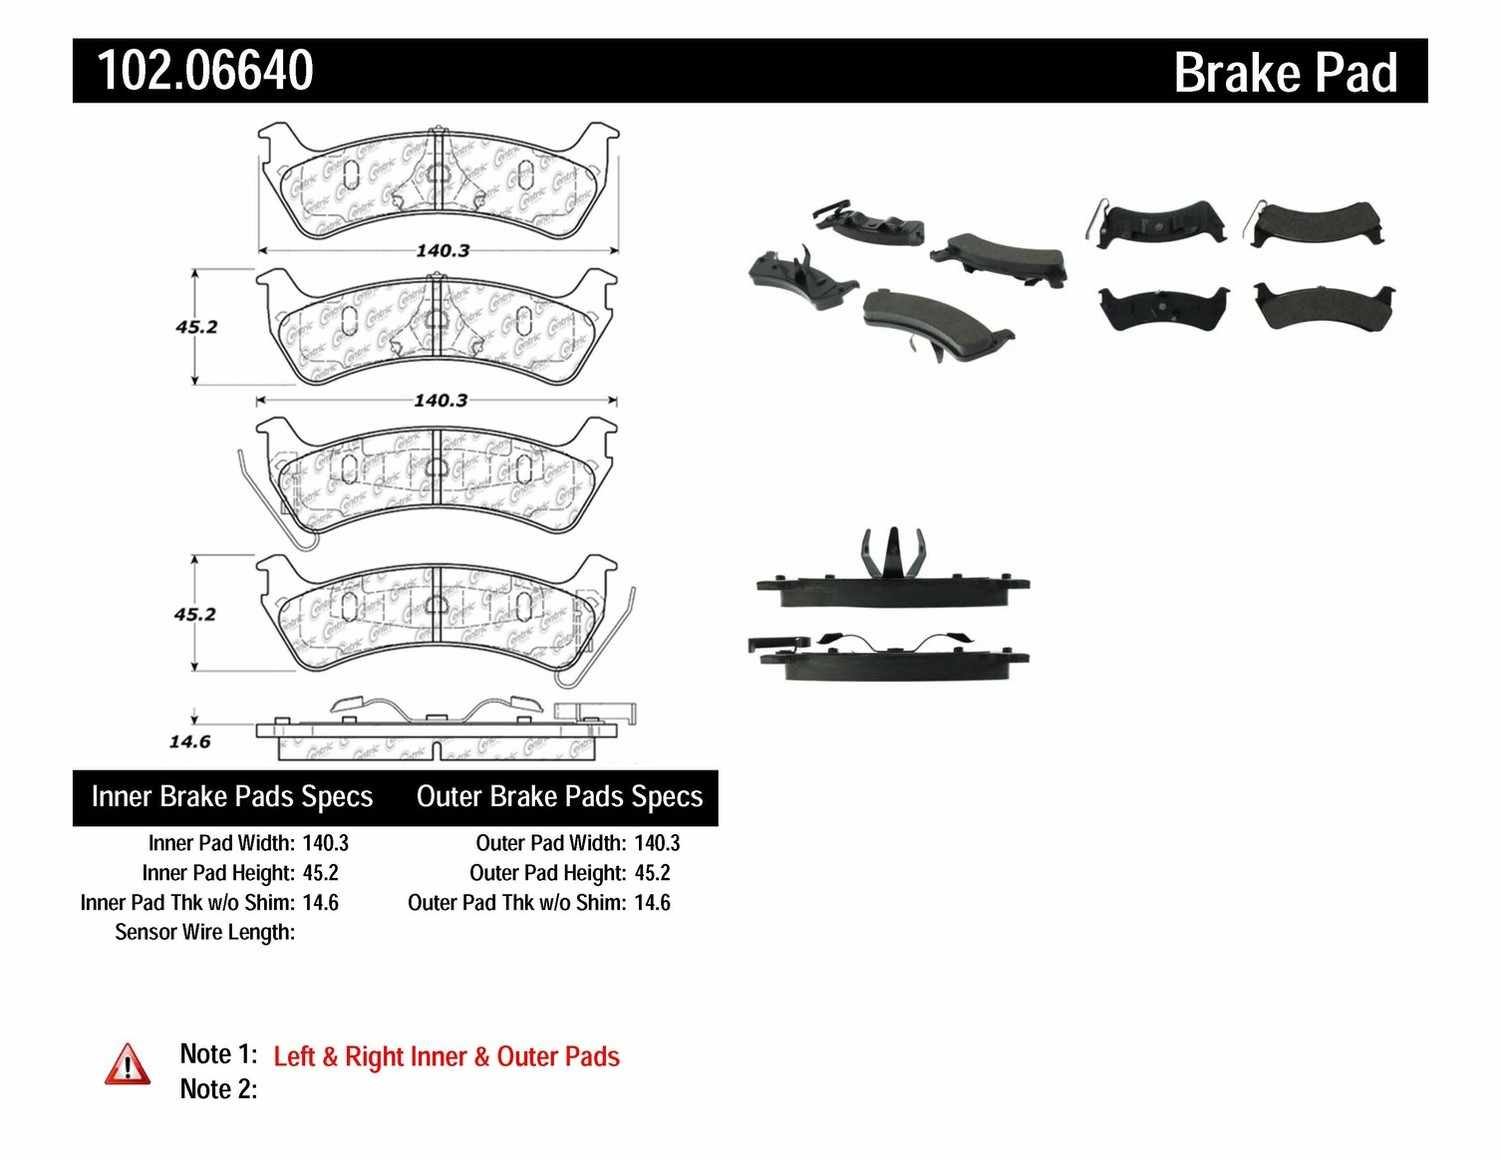 C-TEK BY CENTRIC - C-TEK Metallic Brake Pads (Rear) - CTK 102.06640